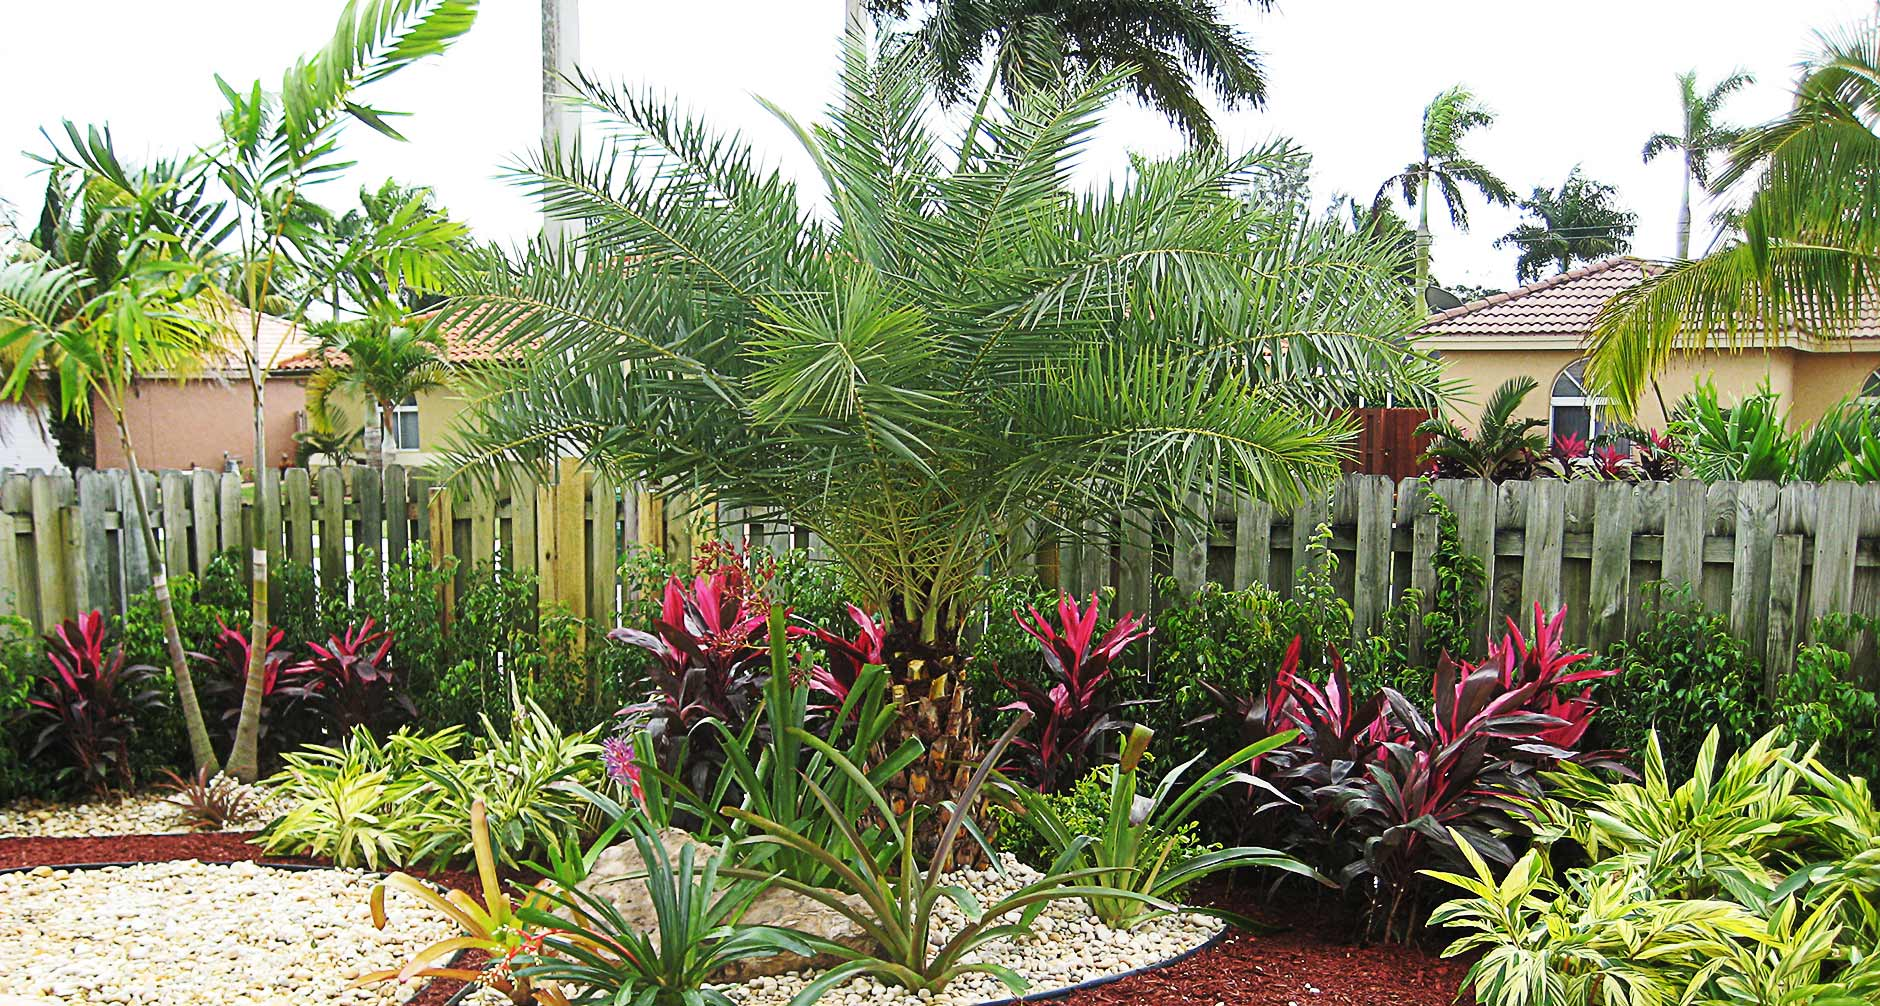 Bl landscape design photos florida diy for Florida backyard landscaping ideas